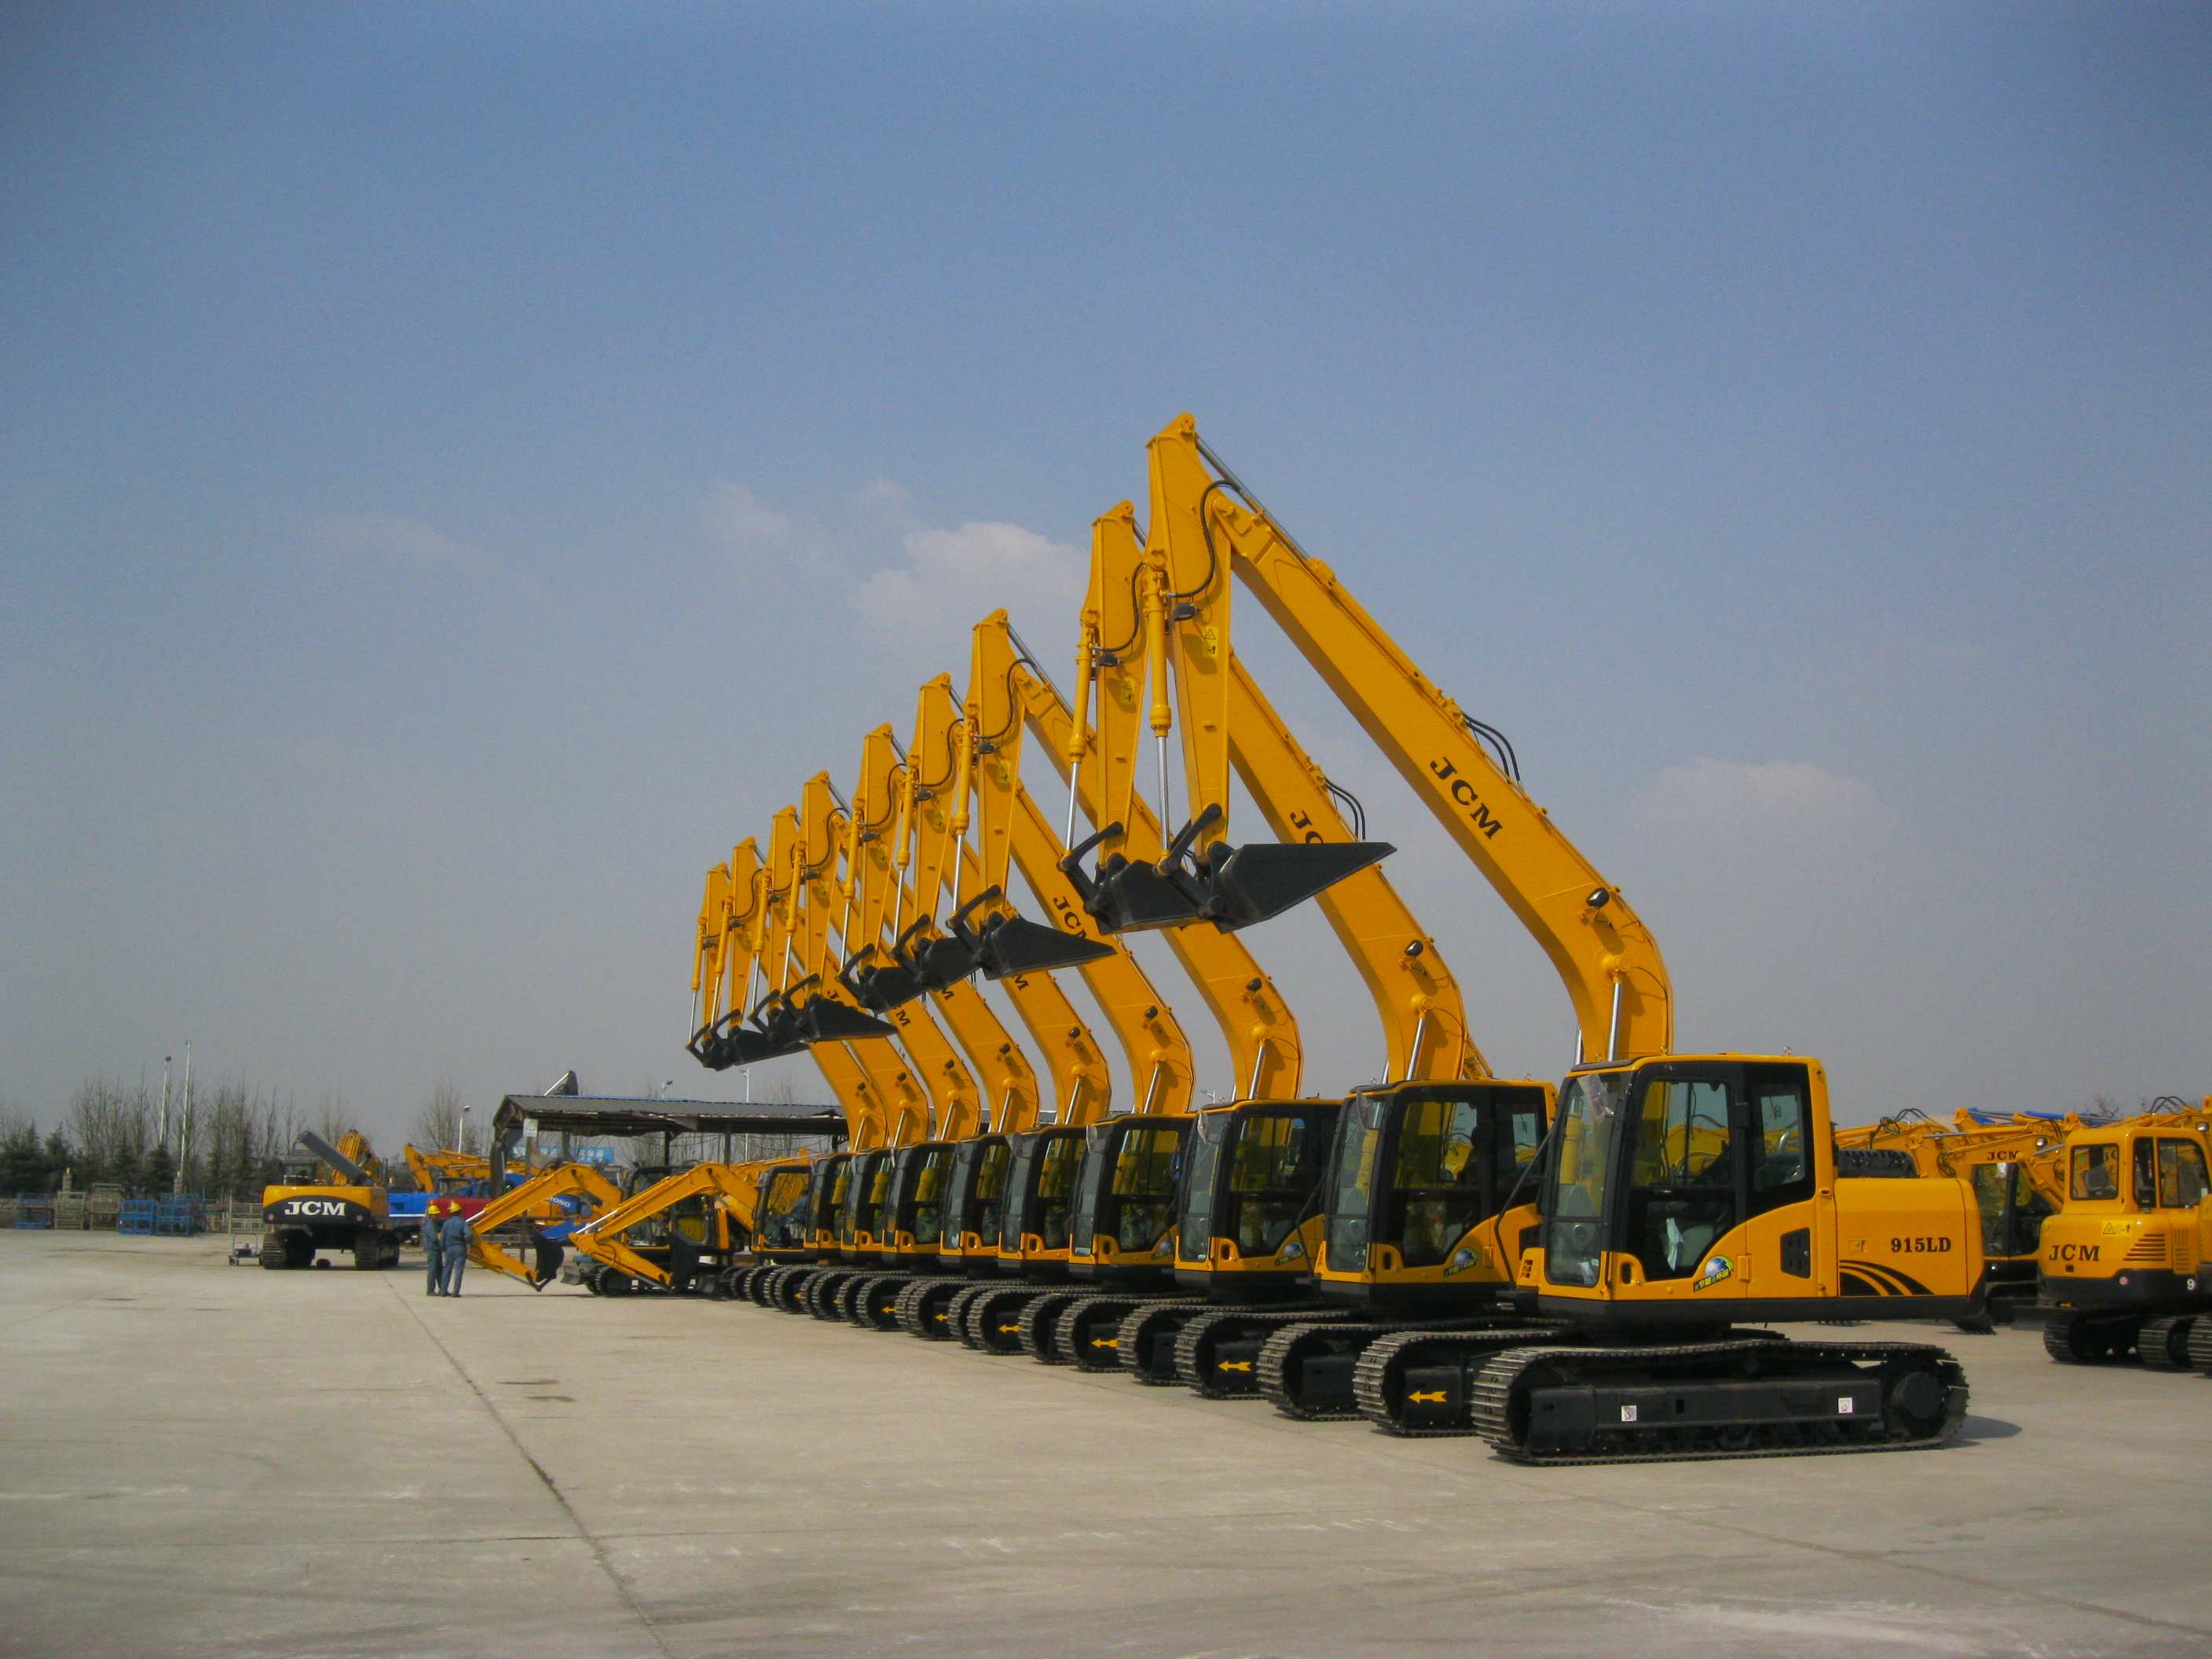 JCM915LD coal unloading excavator with long boom and special bucket